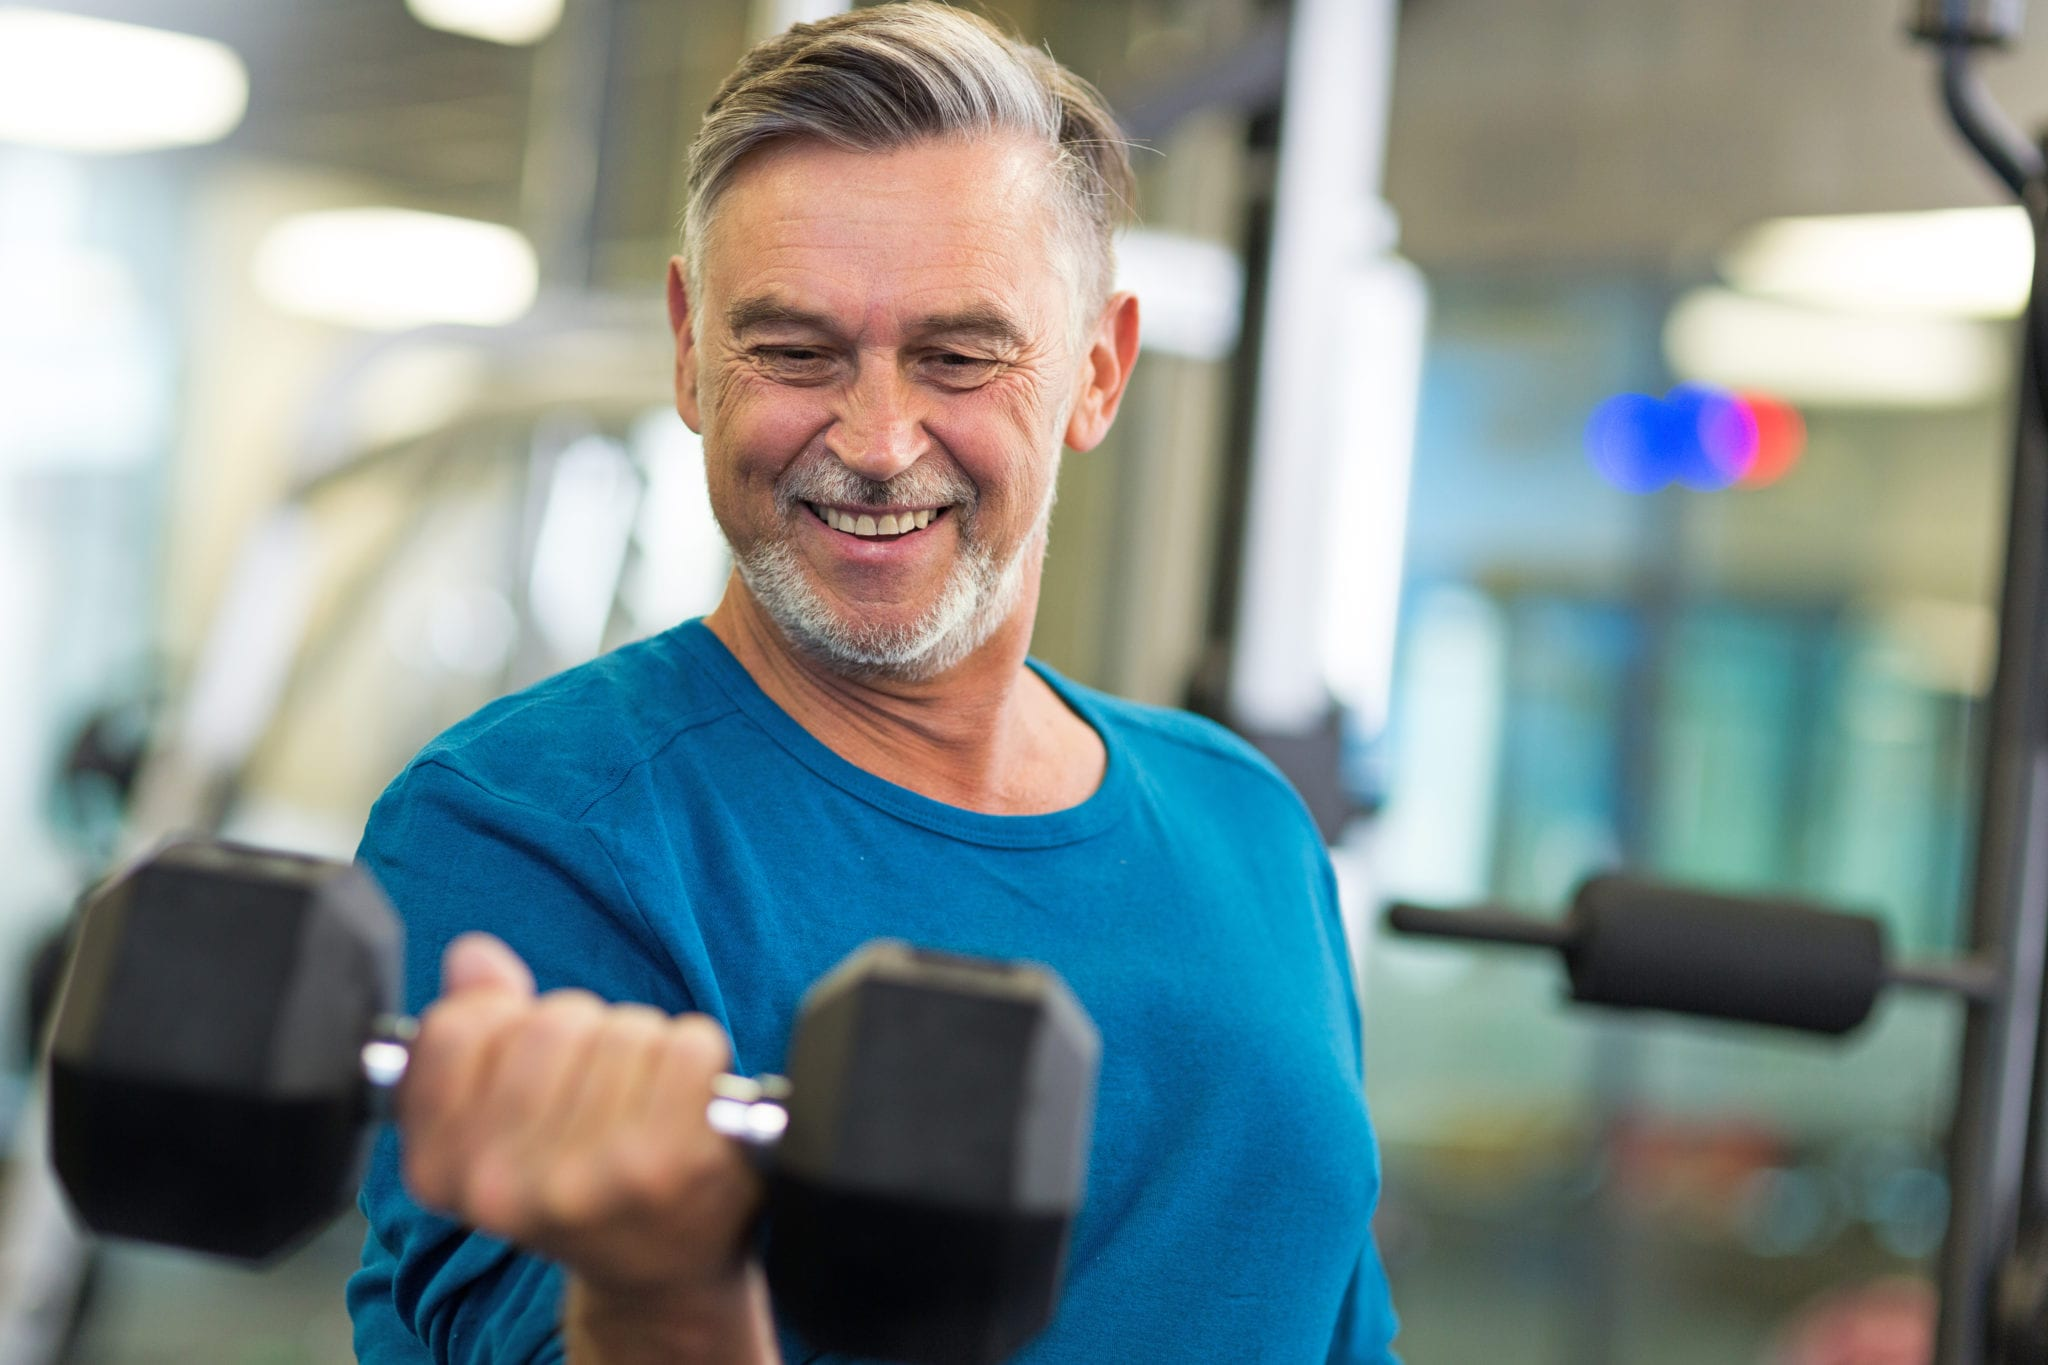 Senior man in health club curling weights with right arm